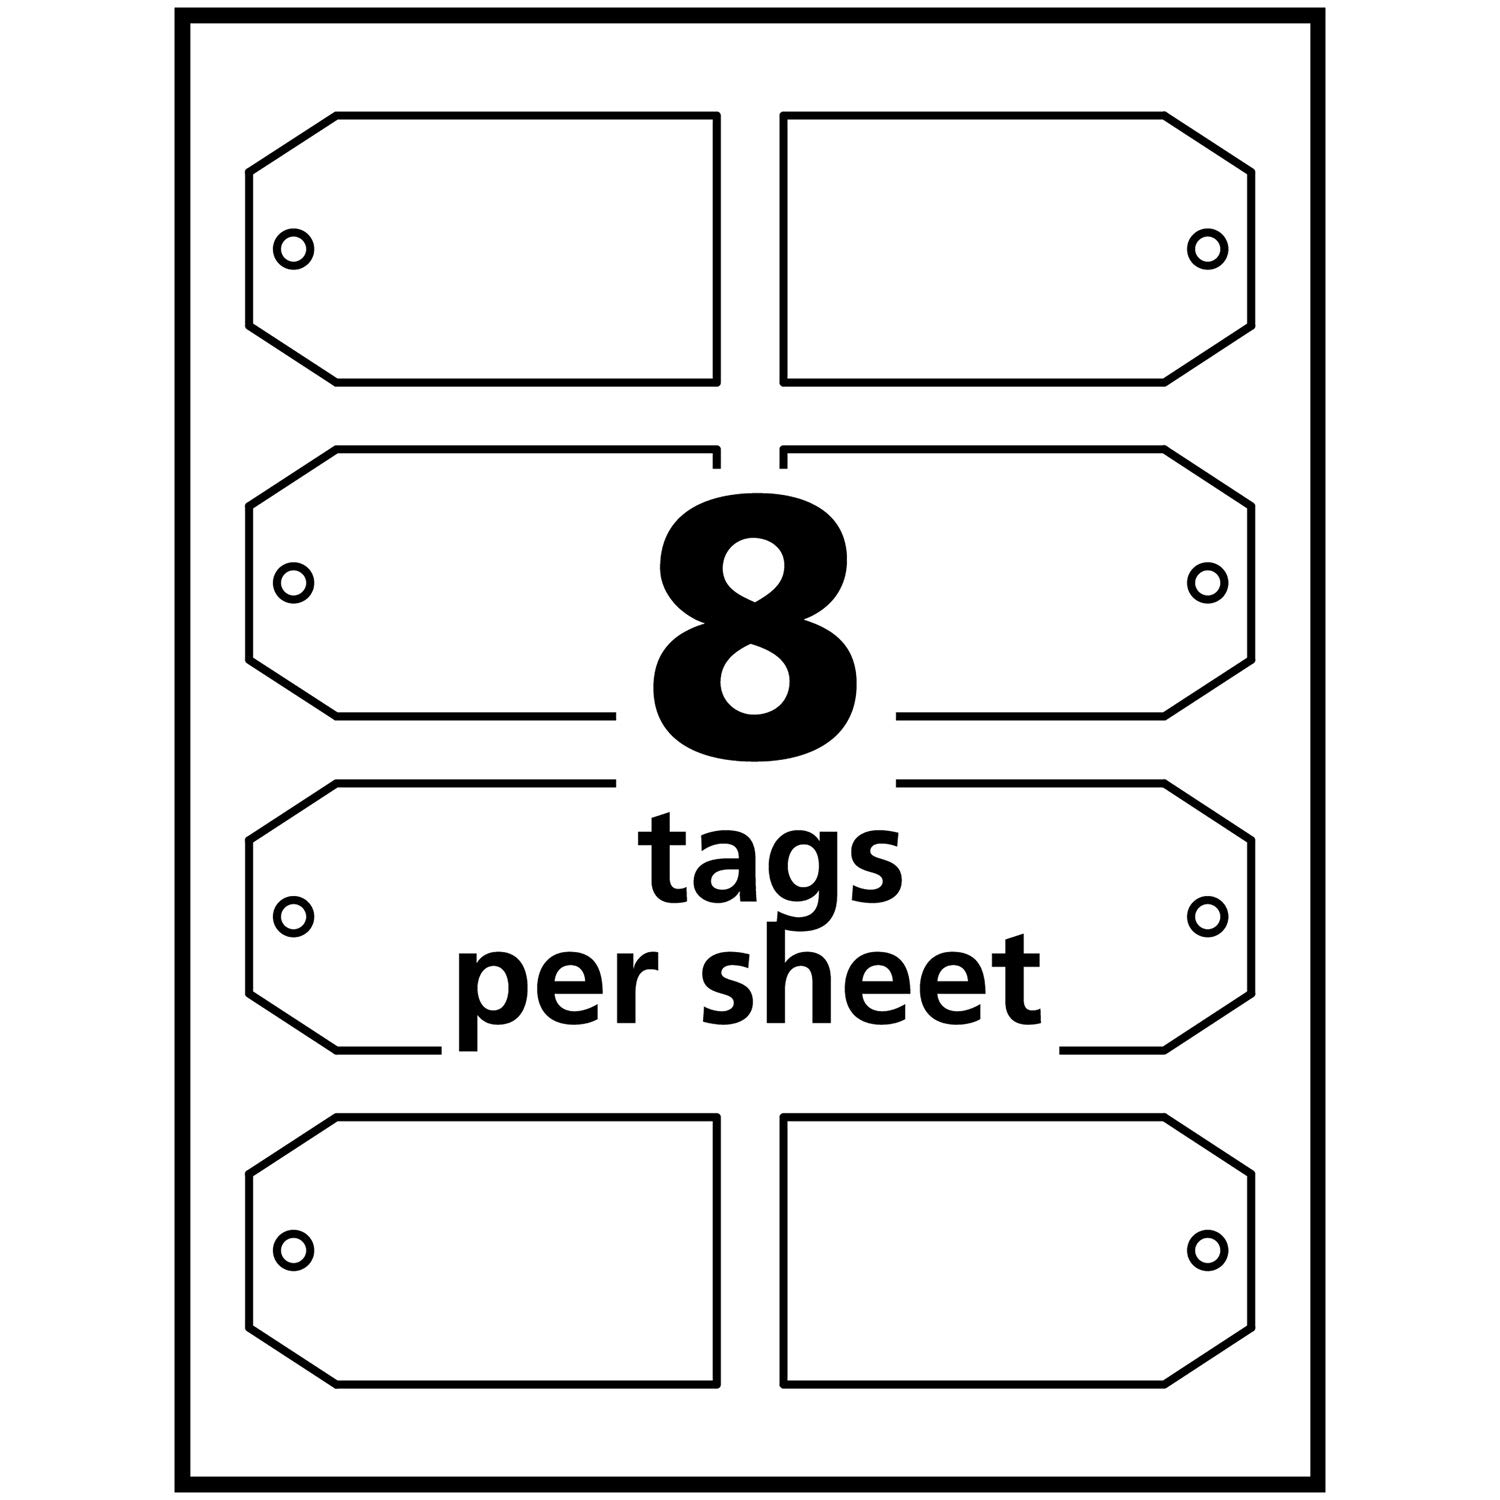 image relating to Printable Tags With Strings named Avery Printable Tags for Inkjet Printers Simply just, Tags With